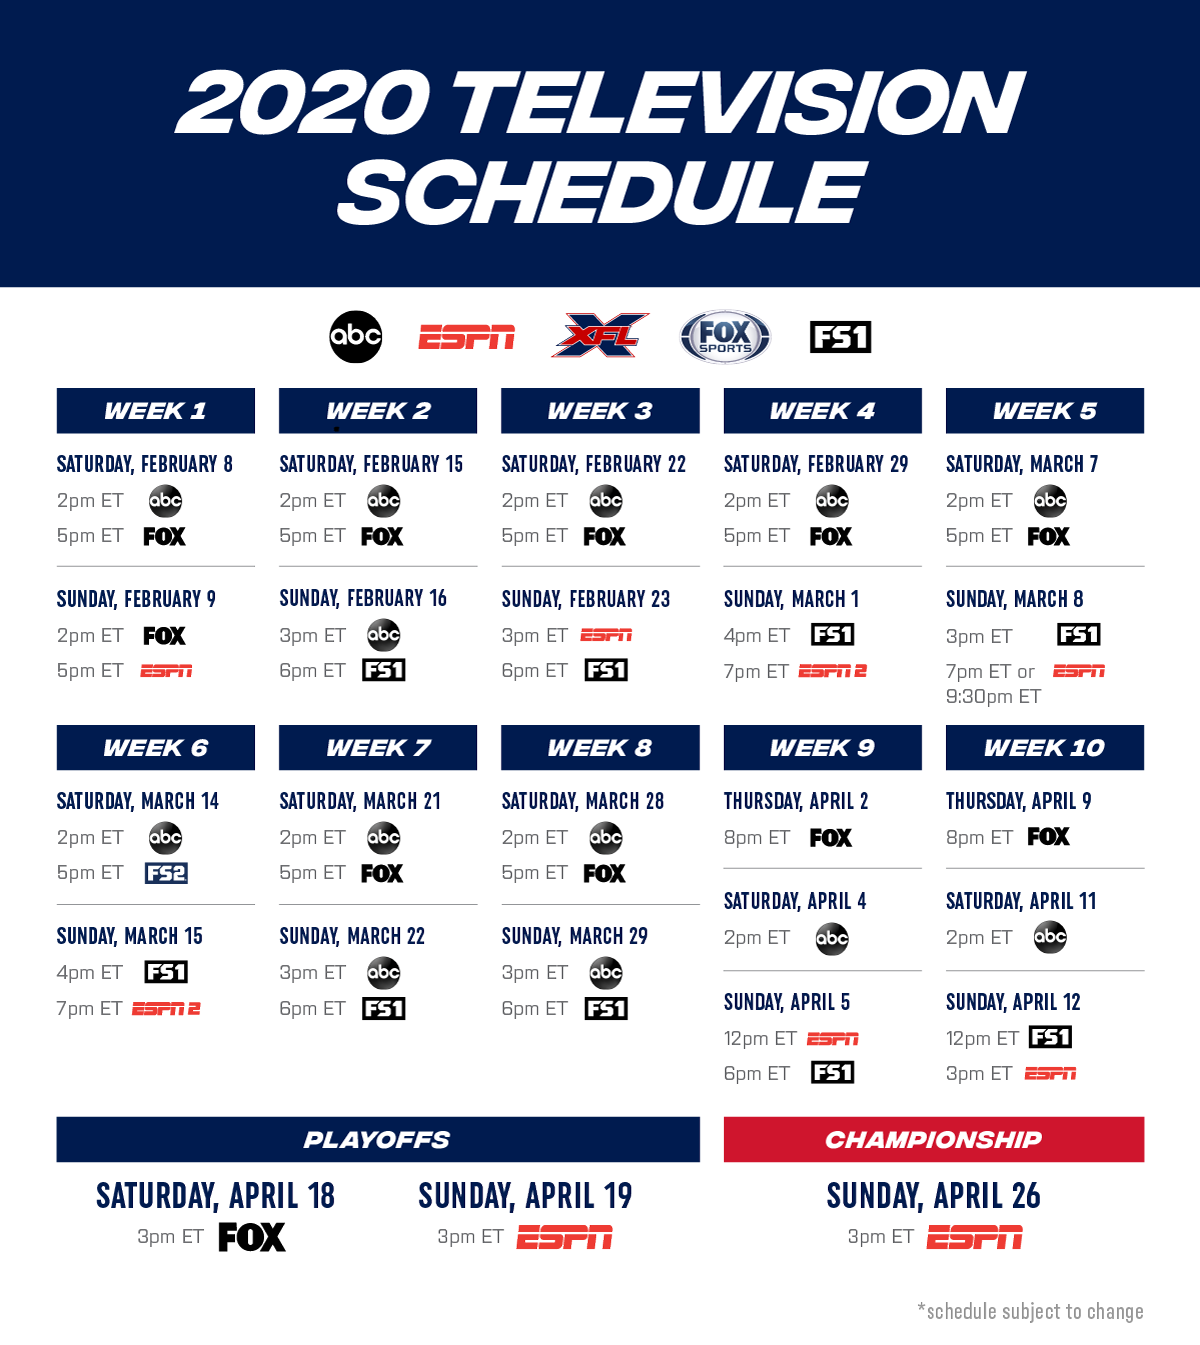 2020 Nfl Playoff Schedule.Xfl 2020 Television Schedule Review